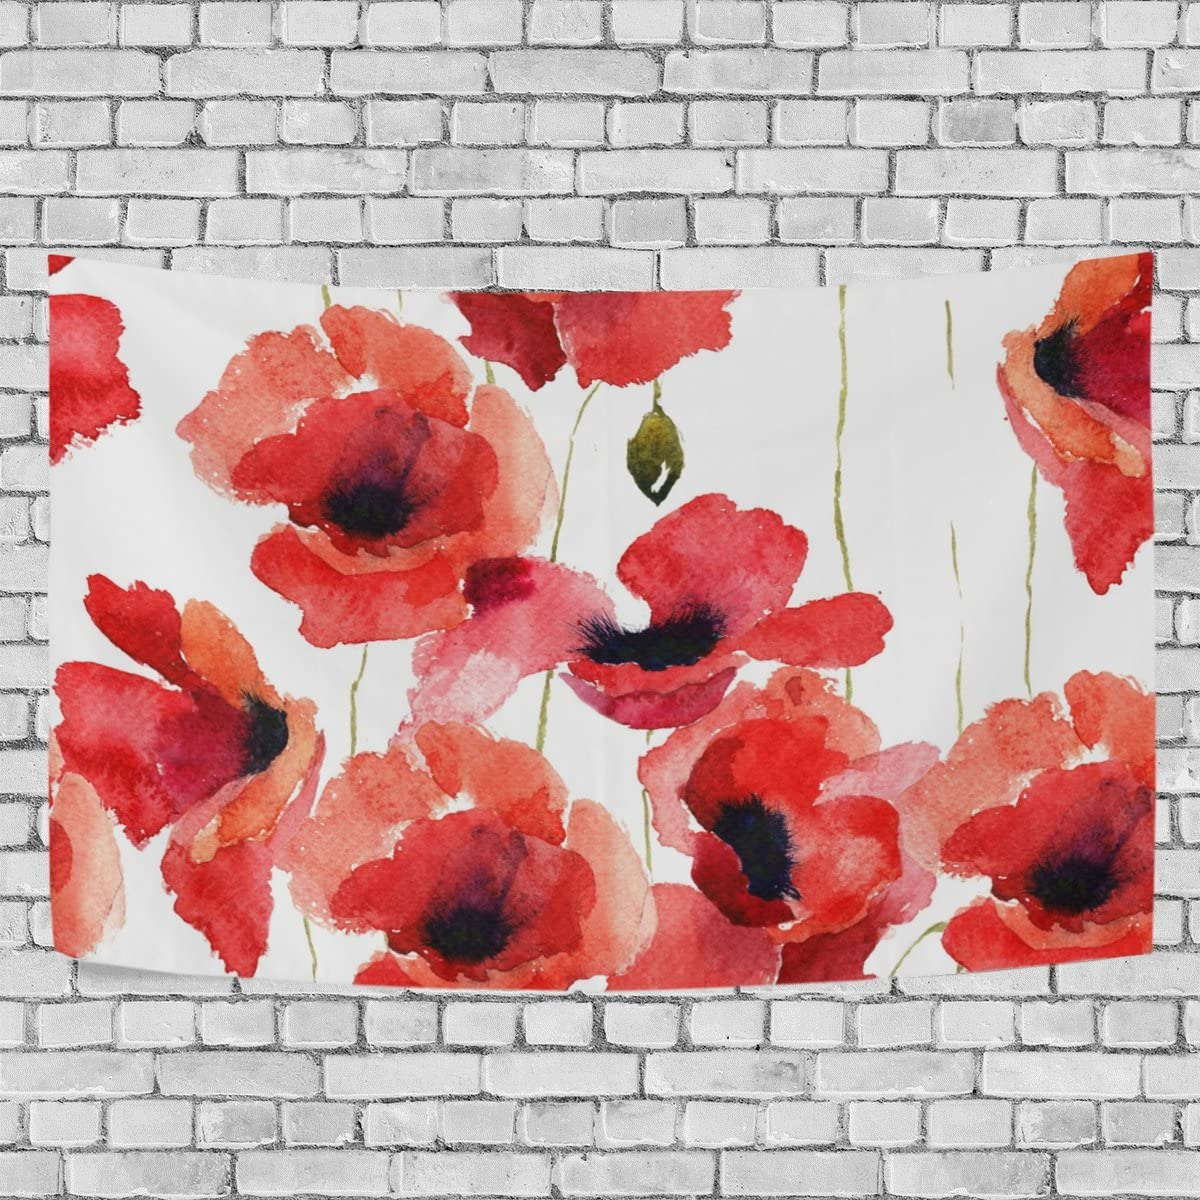 JSTEL Stylized Poppy Flowers Illustration Tapestry Wall Hanging Decoration for Apartment Home Decor Living Room Table Throw Bedspread Dorm 90 x 60 inches